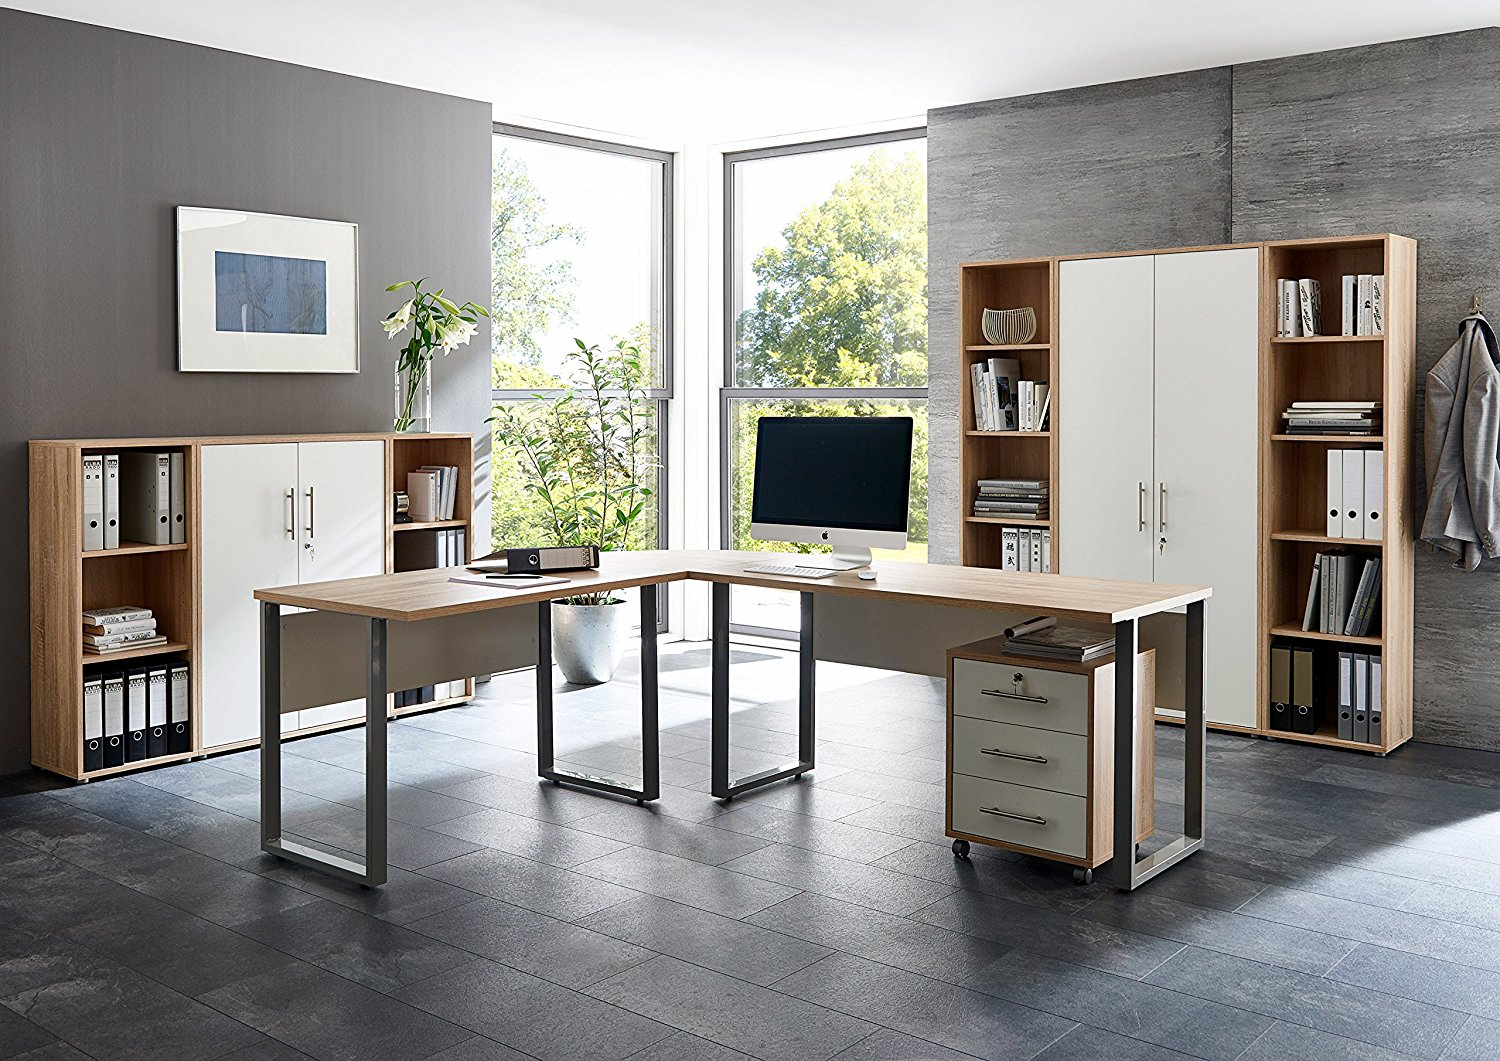 arbeitszimmer office edition in eiche sonoma wei set 5 moebel dich. Black Bedroom Furniture Sets. Home Design Ideas